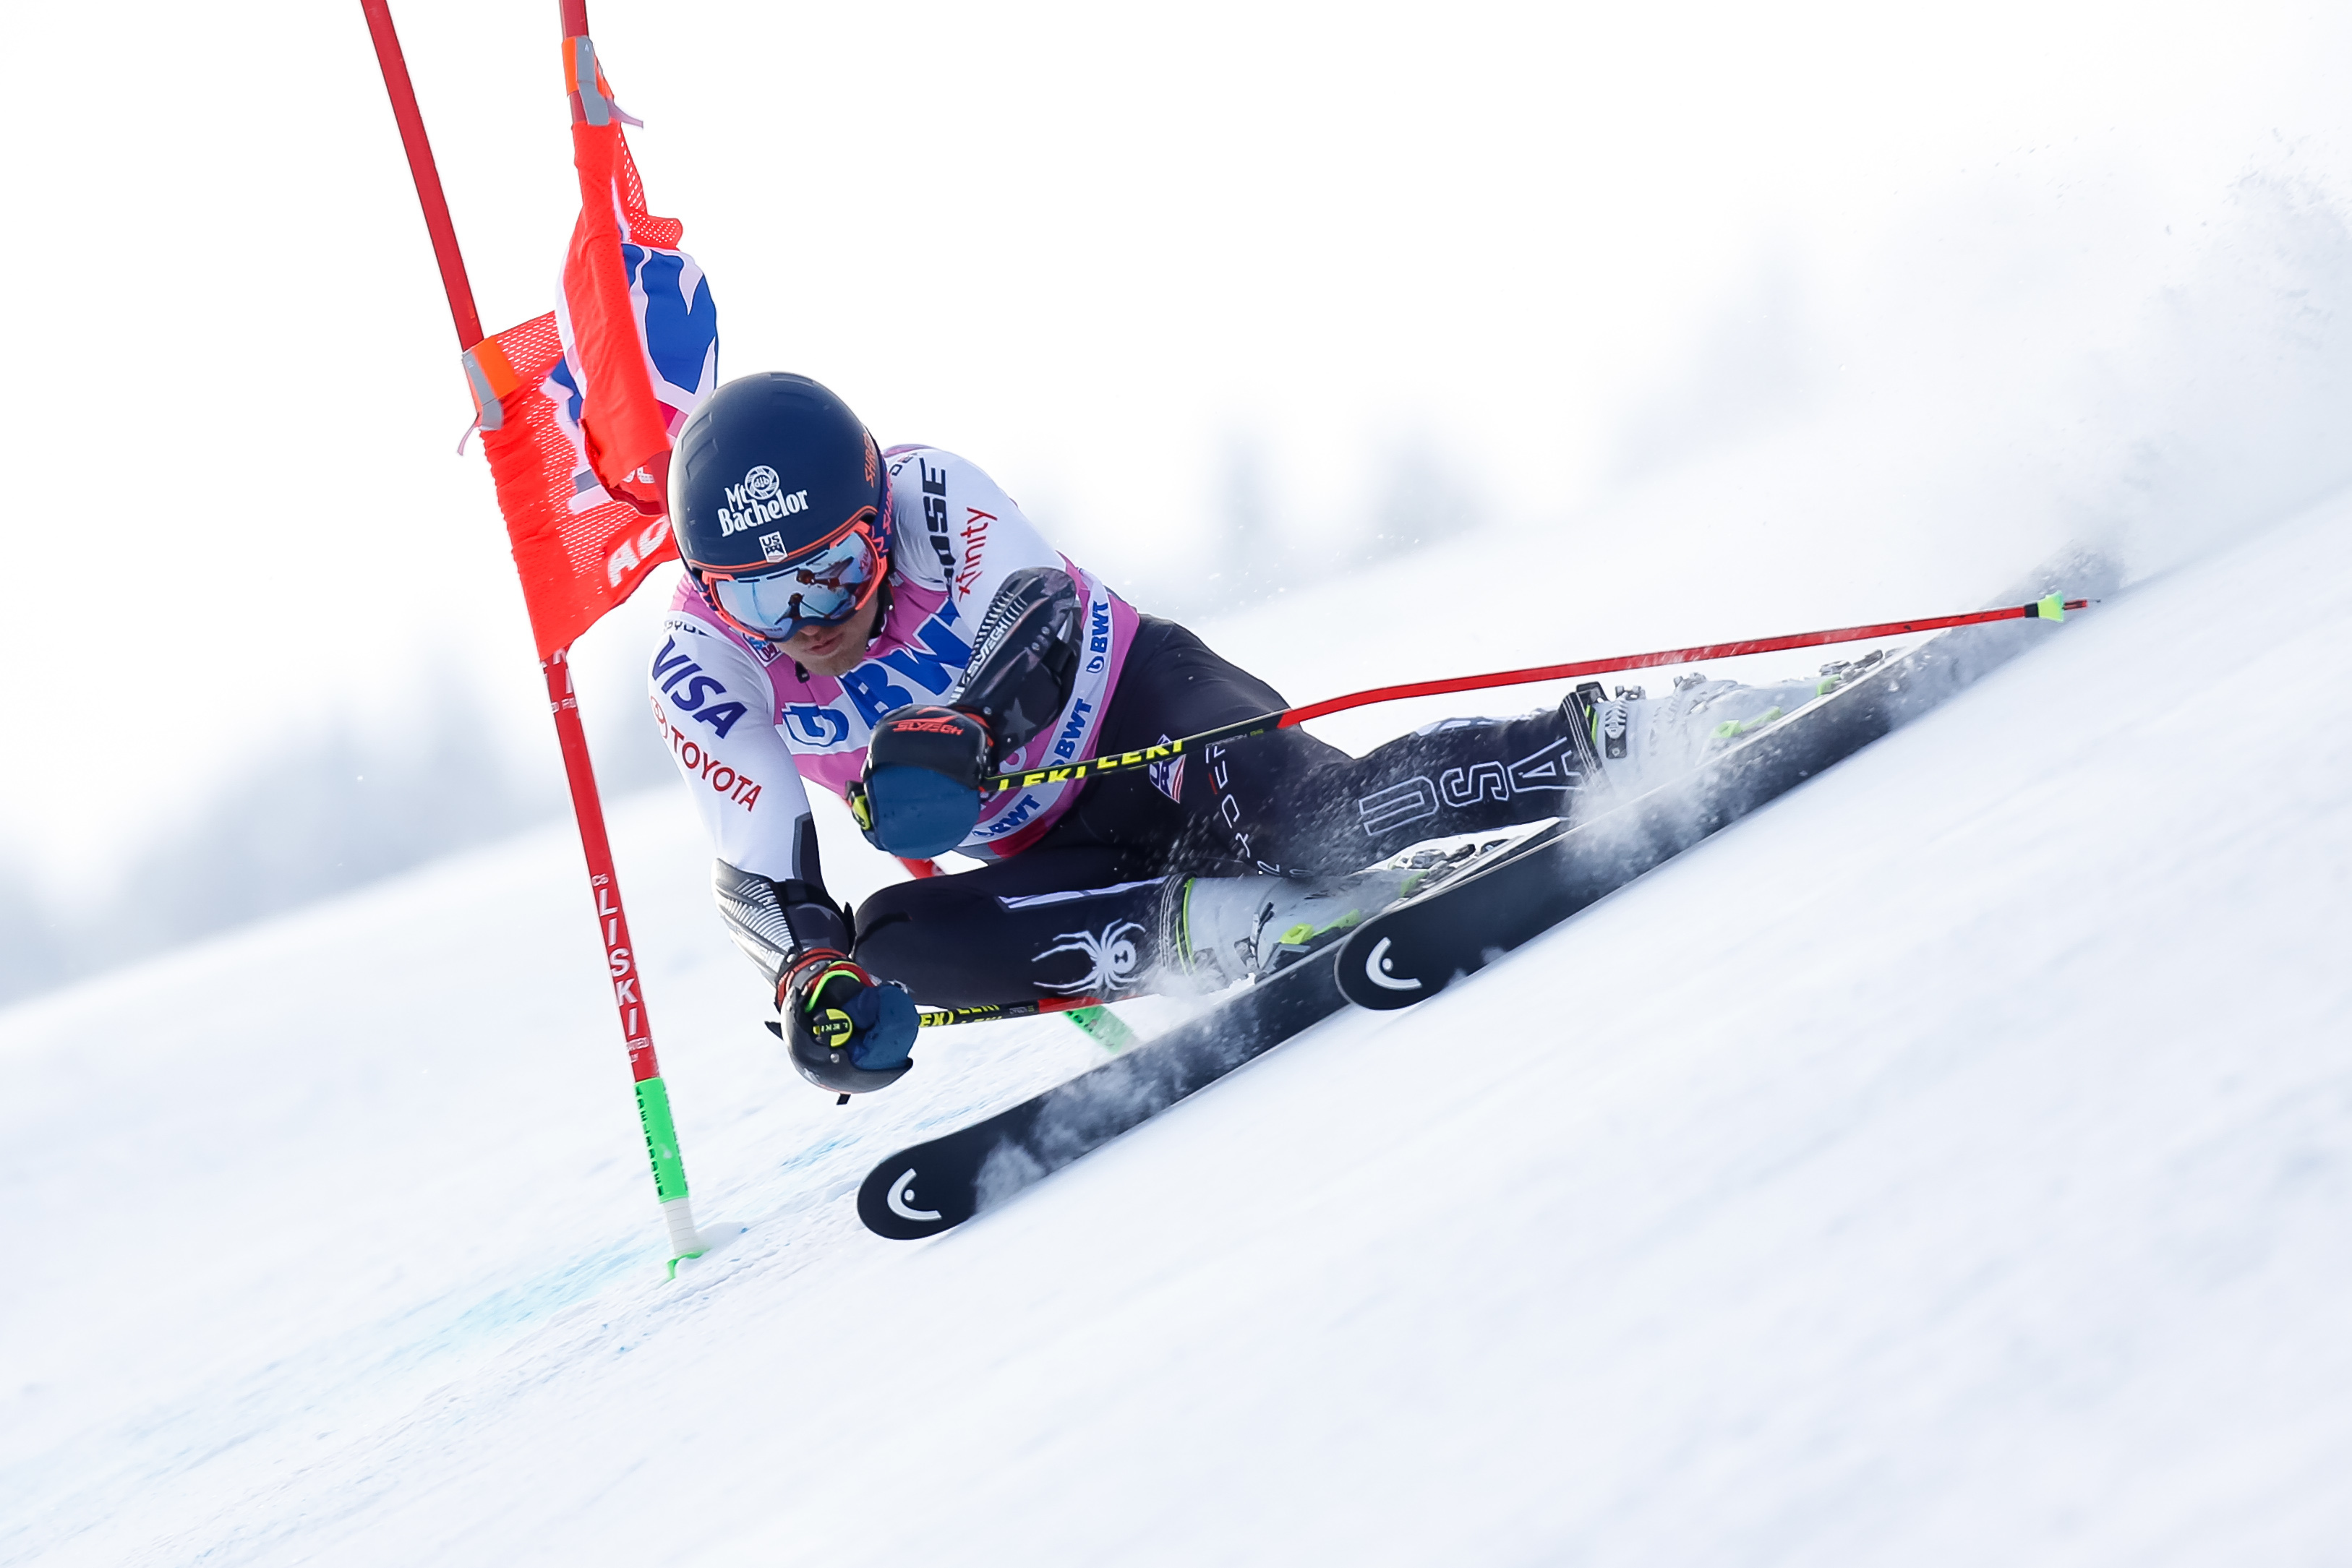 Ford Solid Sixth in Adelboden